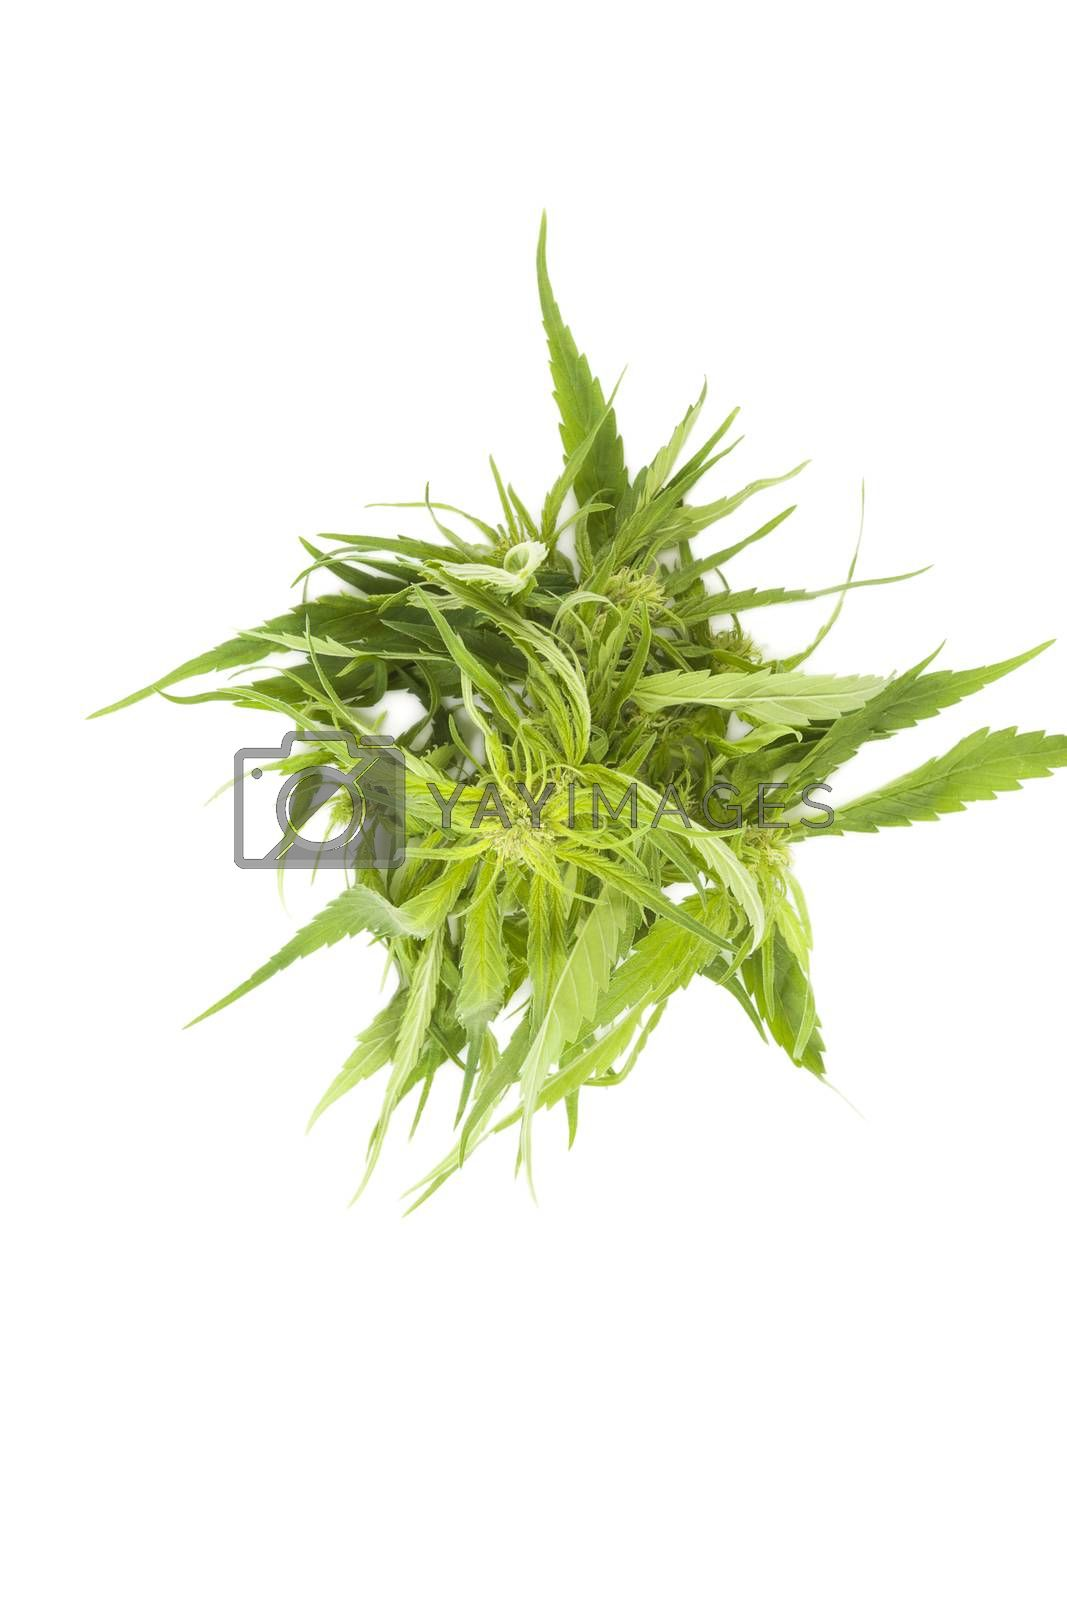 Cannabis background with copy space. Buds and leaves on white background, top view.